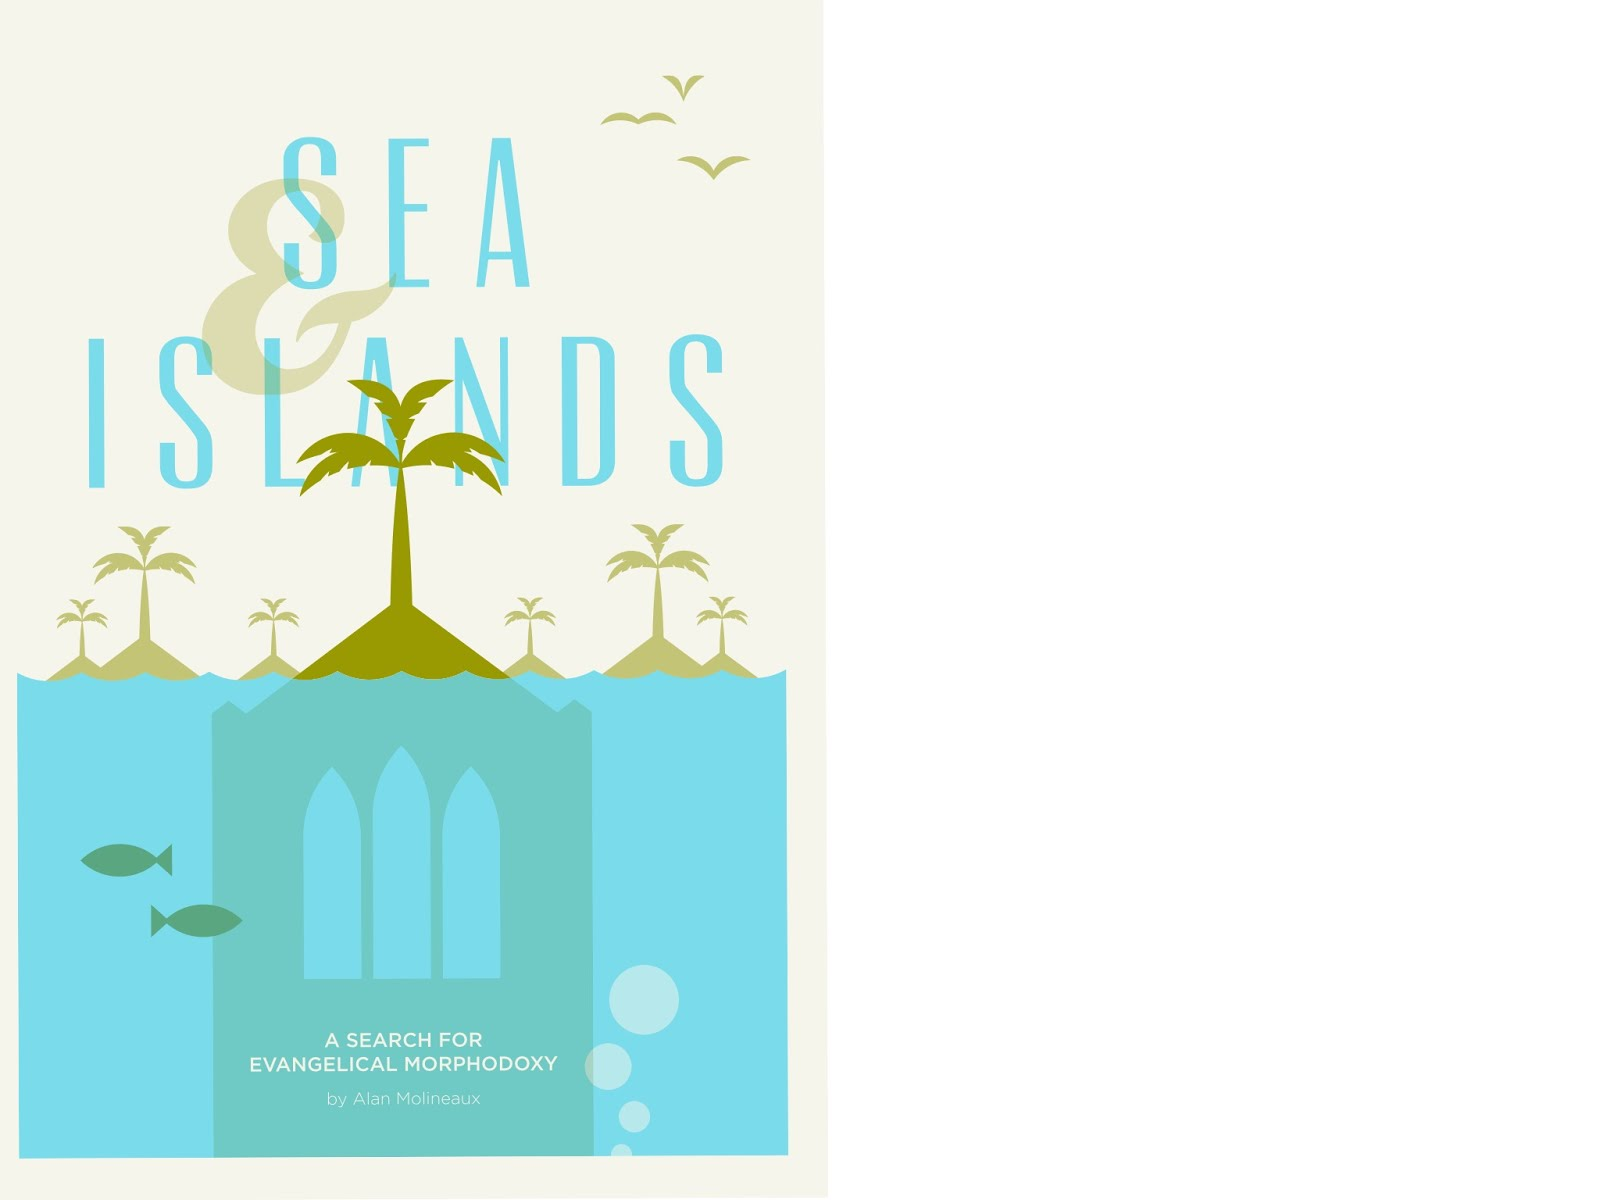 Sea and Islands